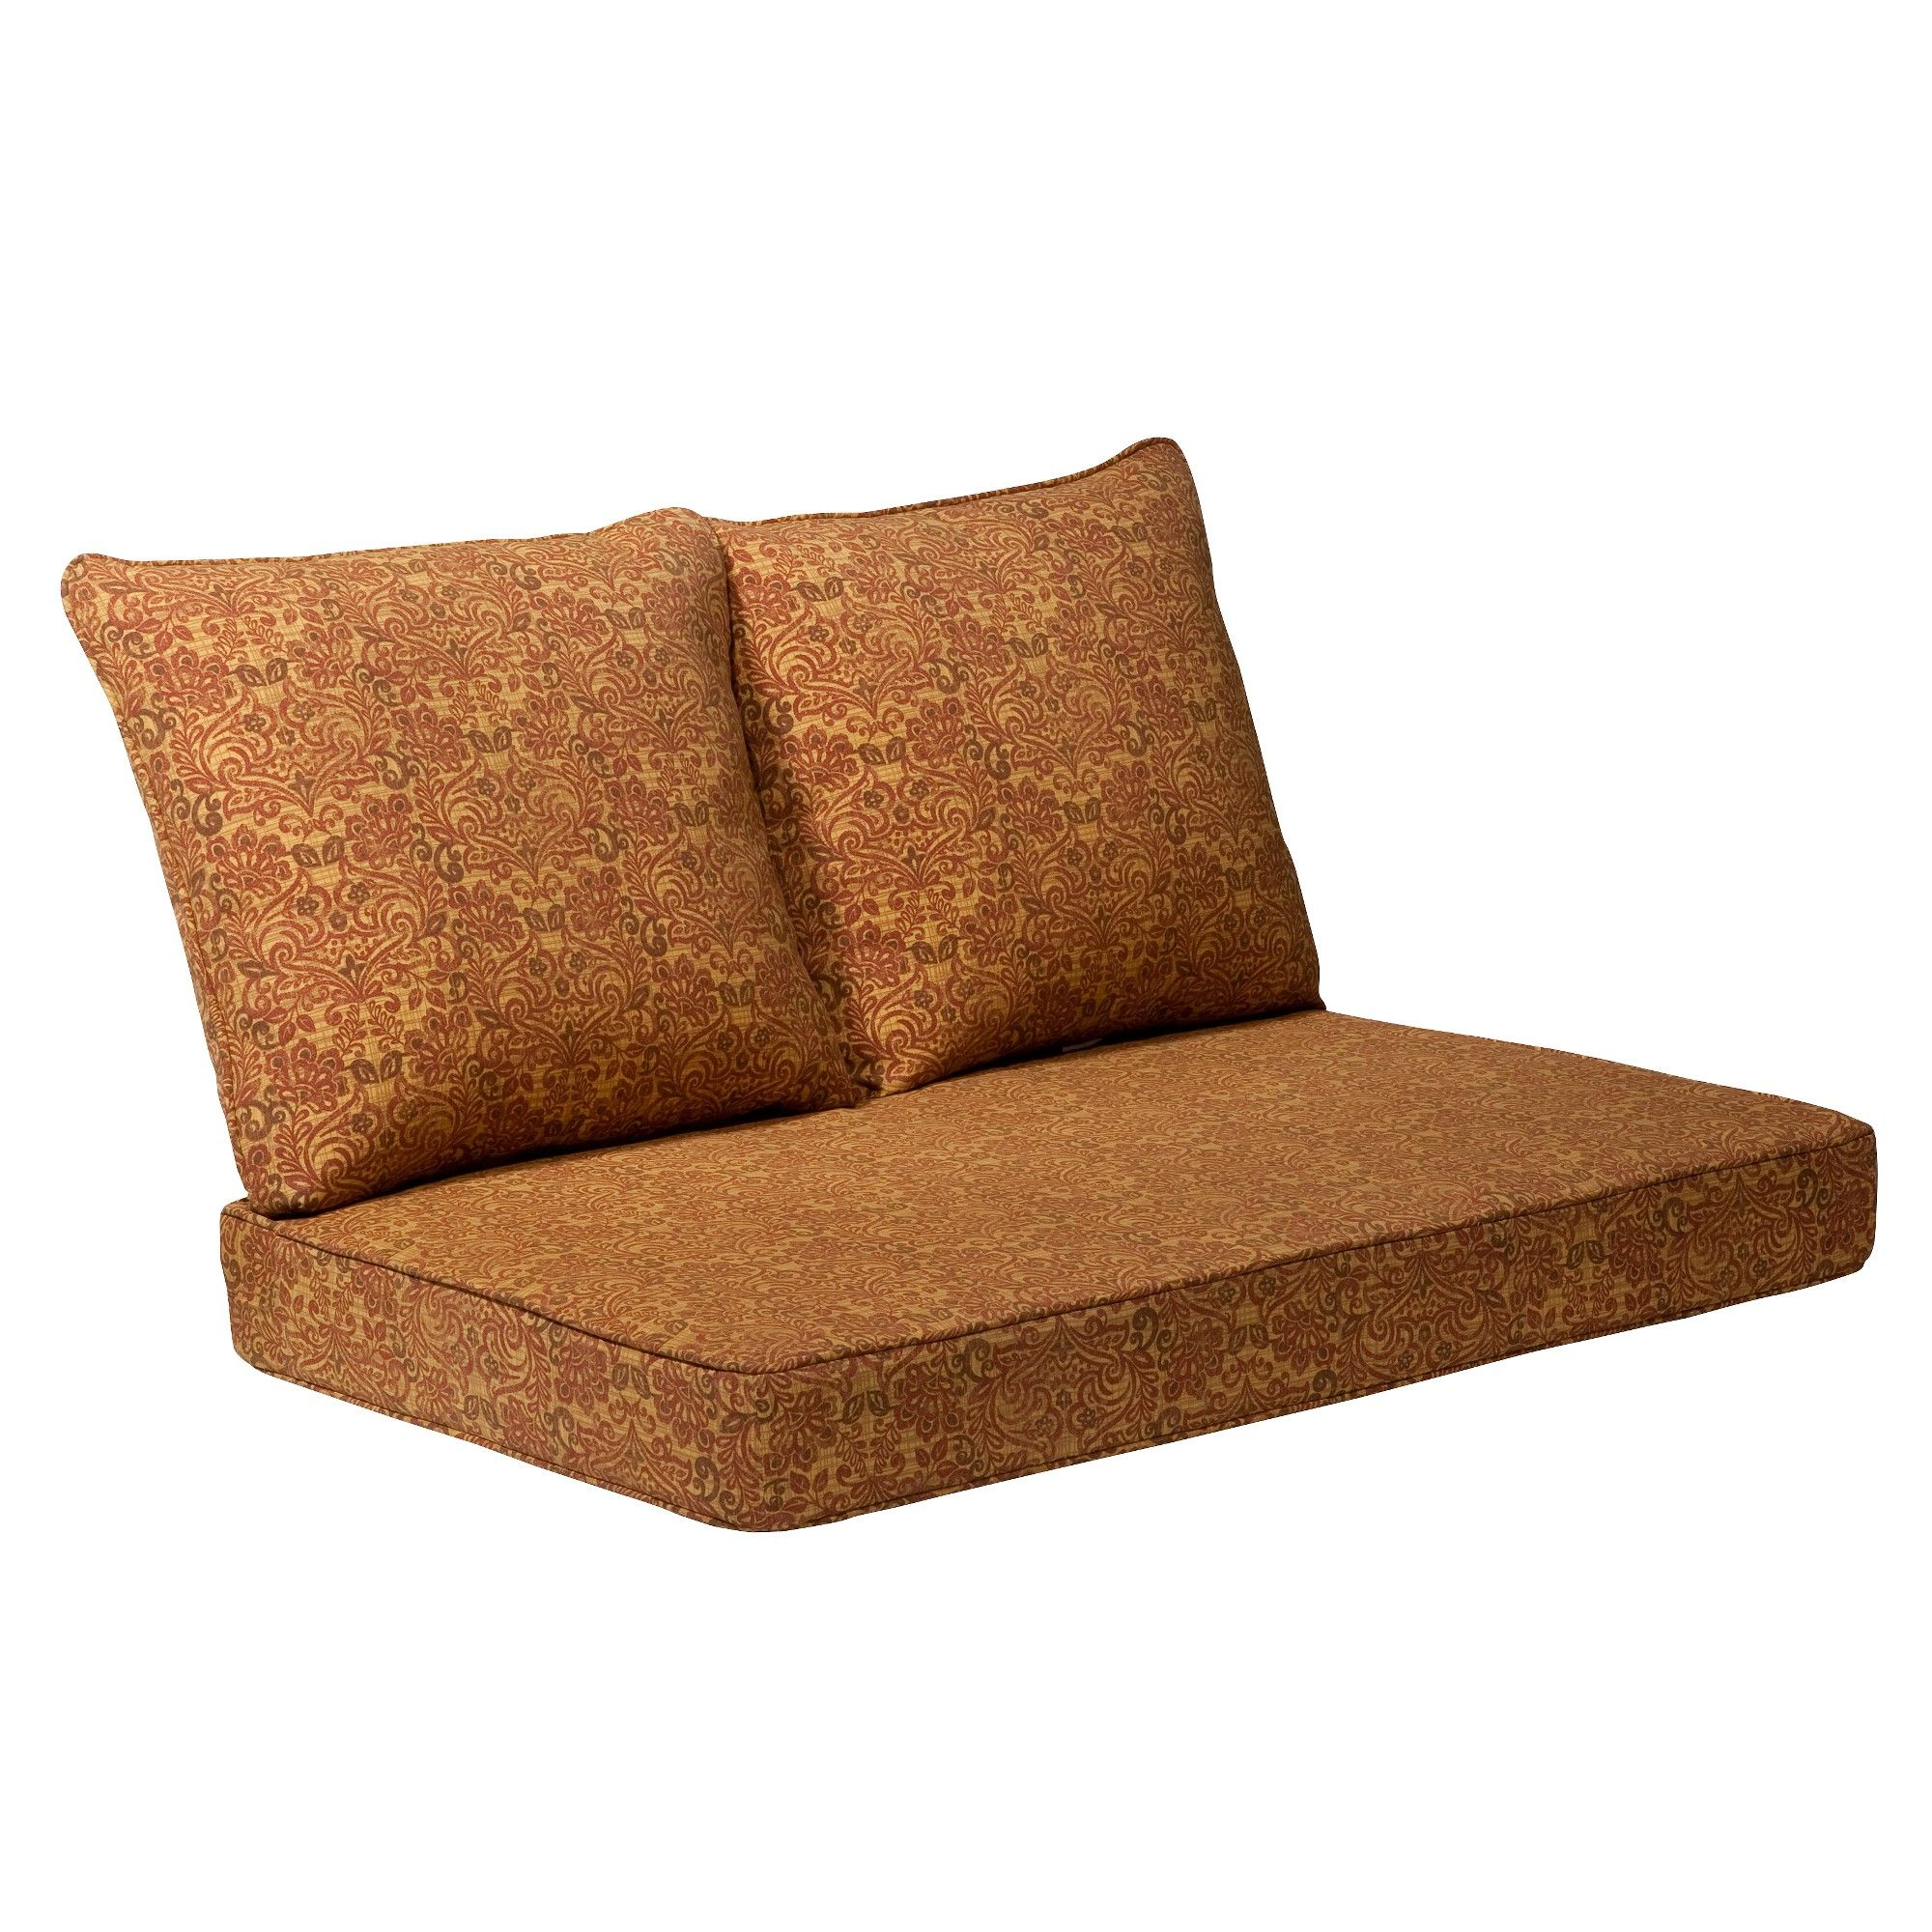 Madaga 3pc Outdoor Loveseat Replacement Cushion Set Gold Floral